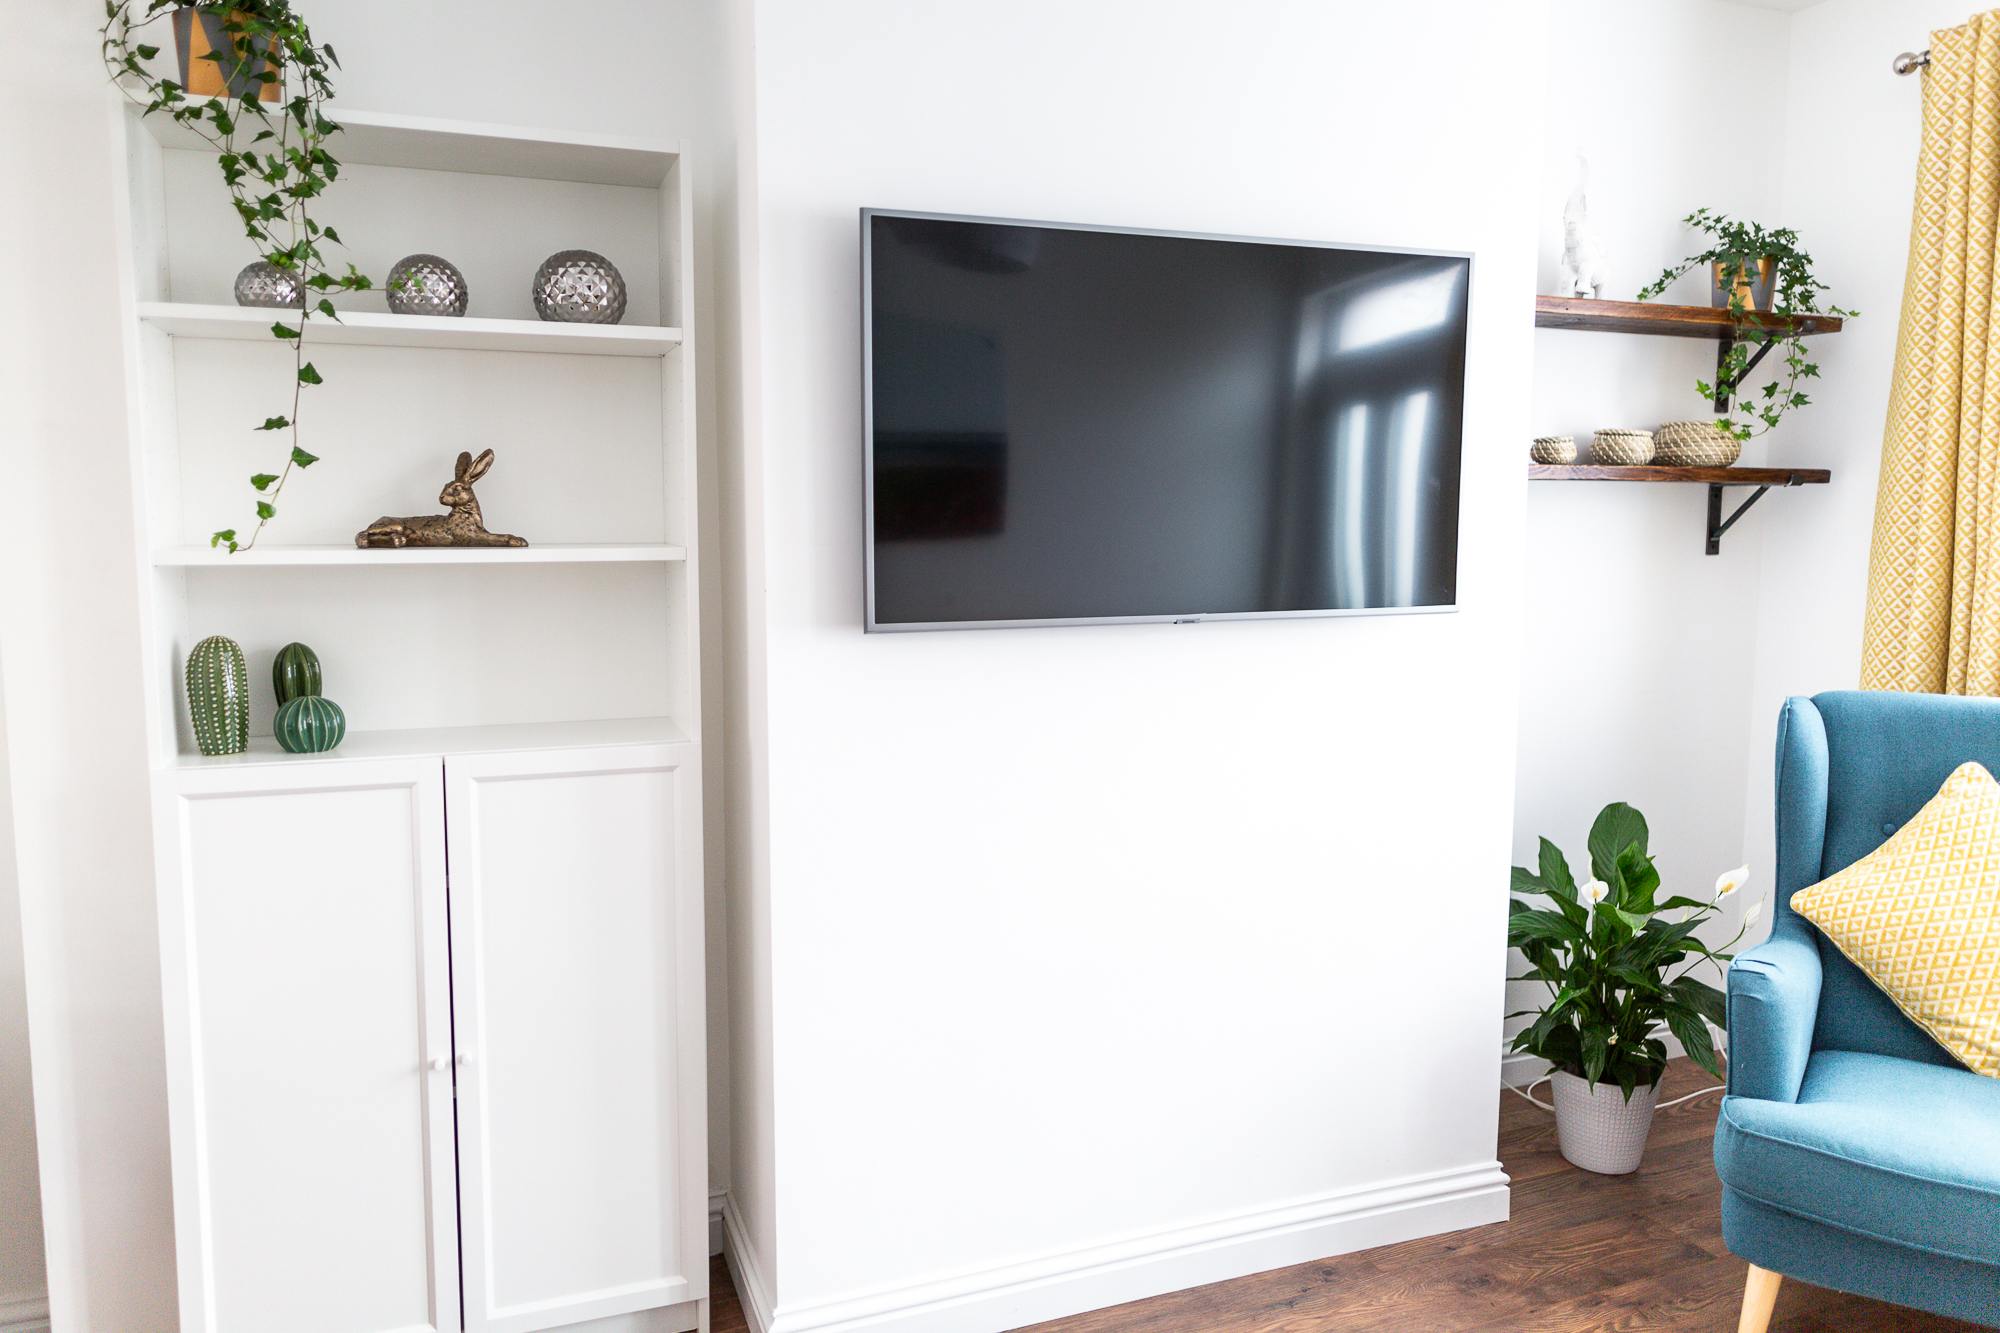 Isca house serviced accommodation Exeter